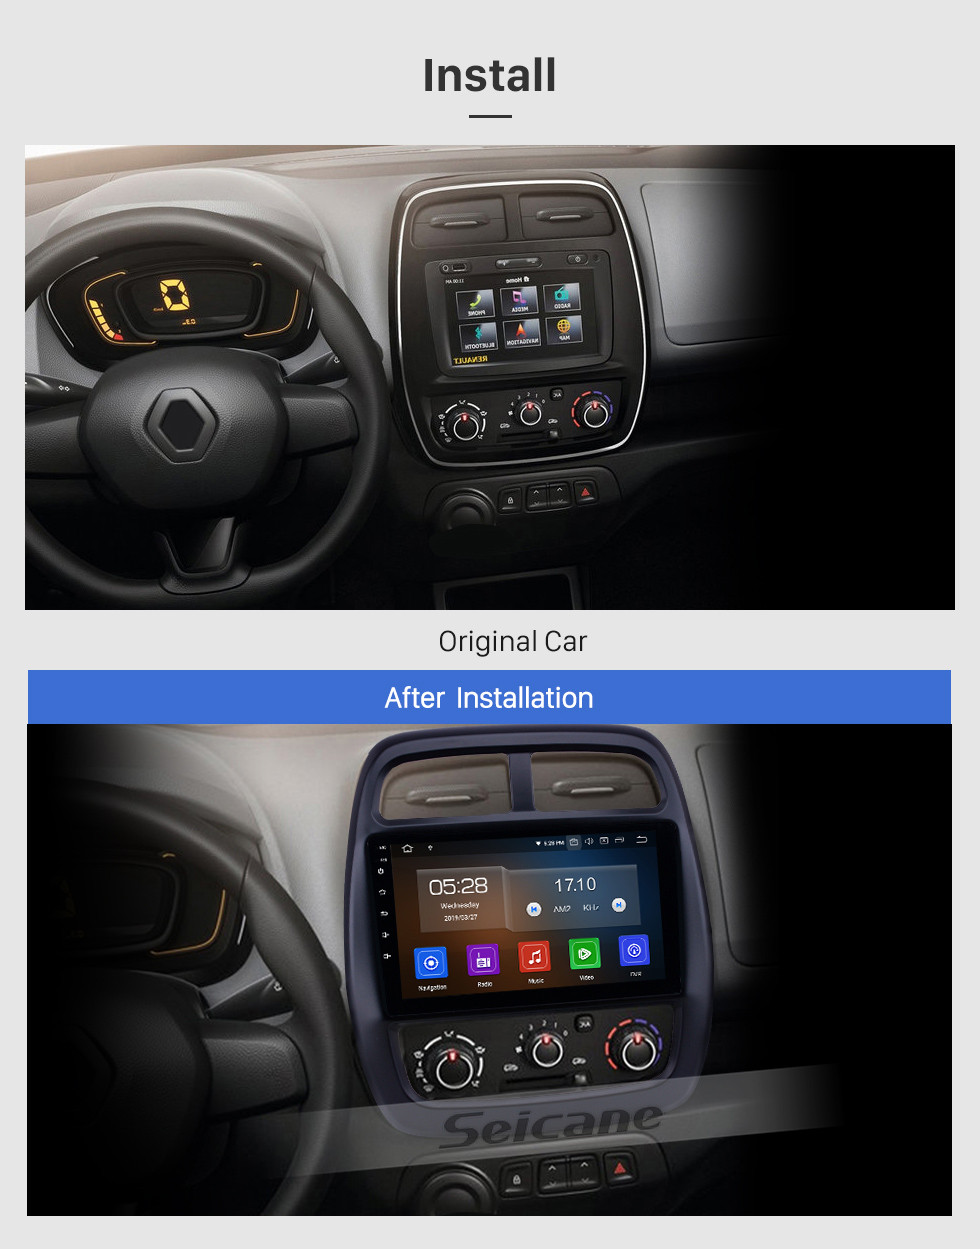 Seicane OEM 9 inch Android 10.0 Radio for 2012-2017 Renault Kwid Bluetooth HD Touchscreen GPS Navigation Carplay support Rearview camera